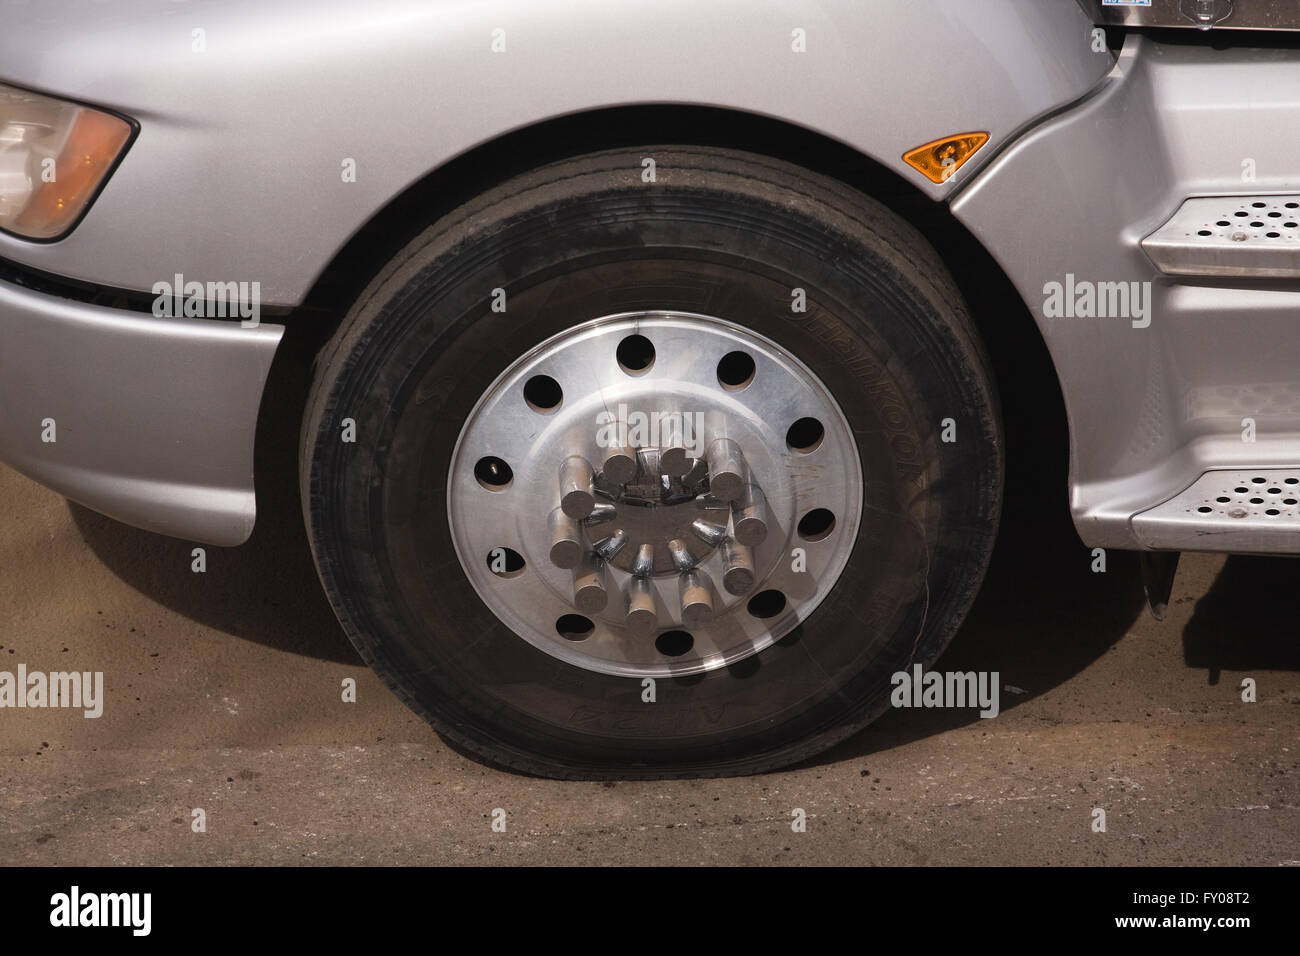 front left wheel and tire of a tractor trailer articulated lorry with a cracked aluminum hub